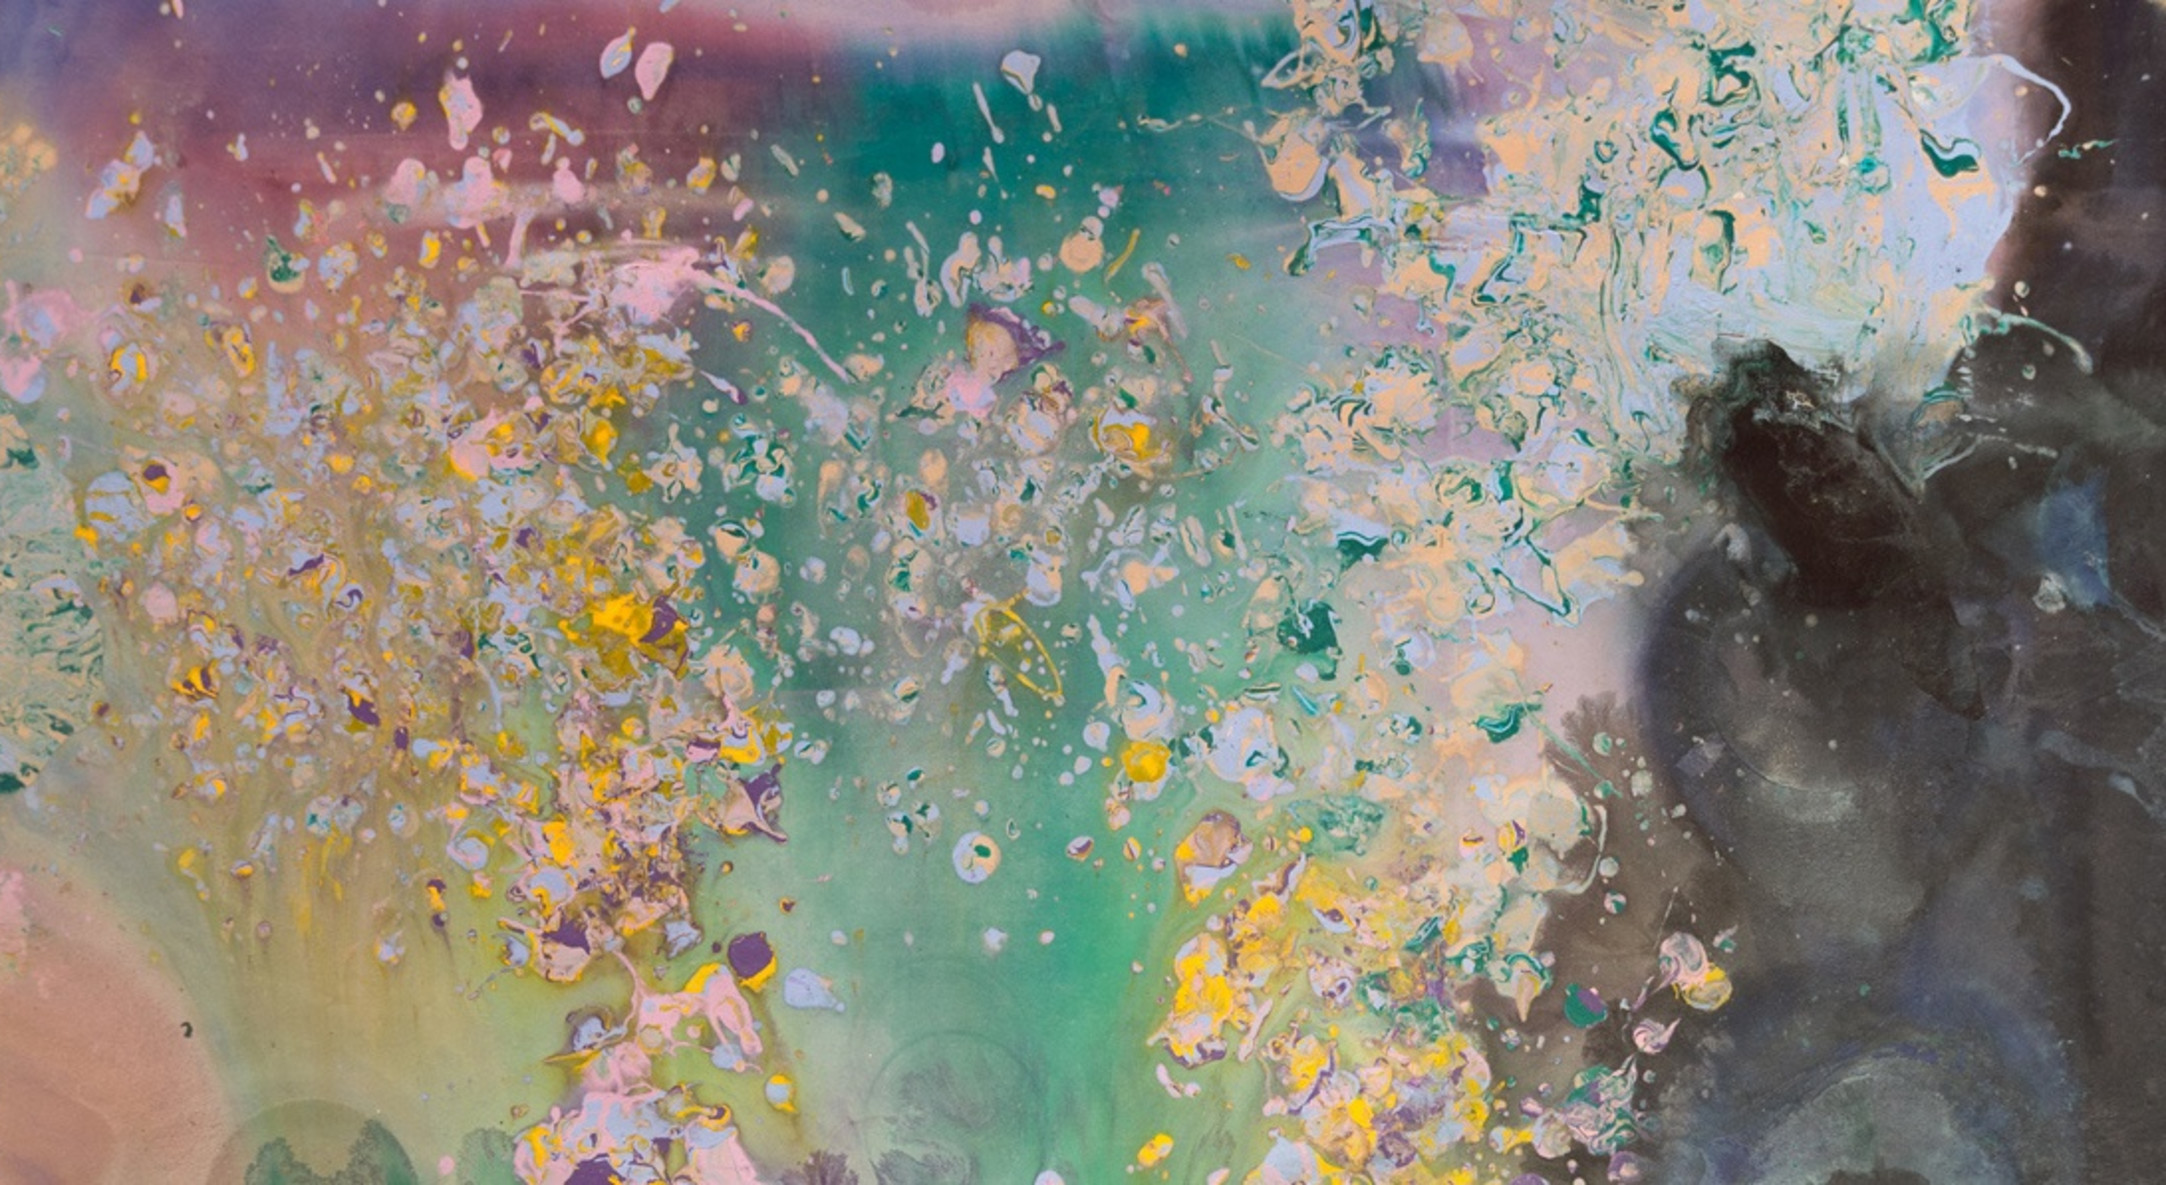 Detail of Frank Bowling, Moby Dick, 1981, Acrylic on canvas, 250.5 x 189 cm, 98 5/8 x 74 3/8 in